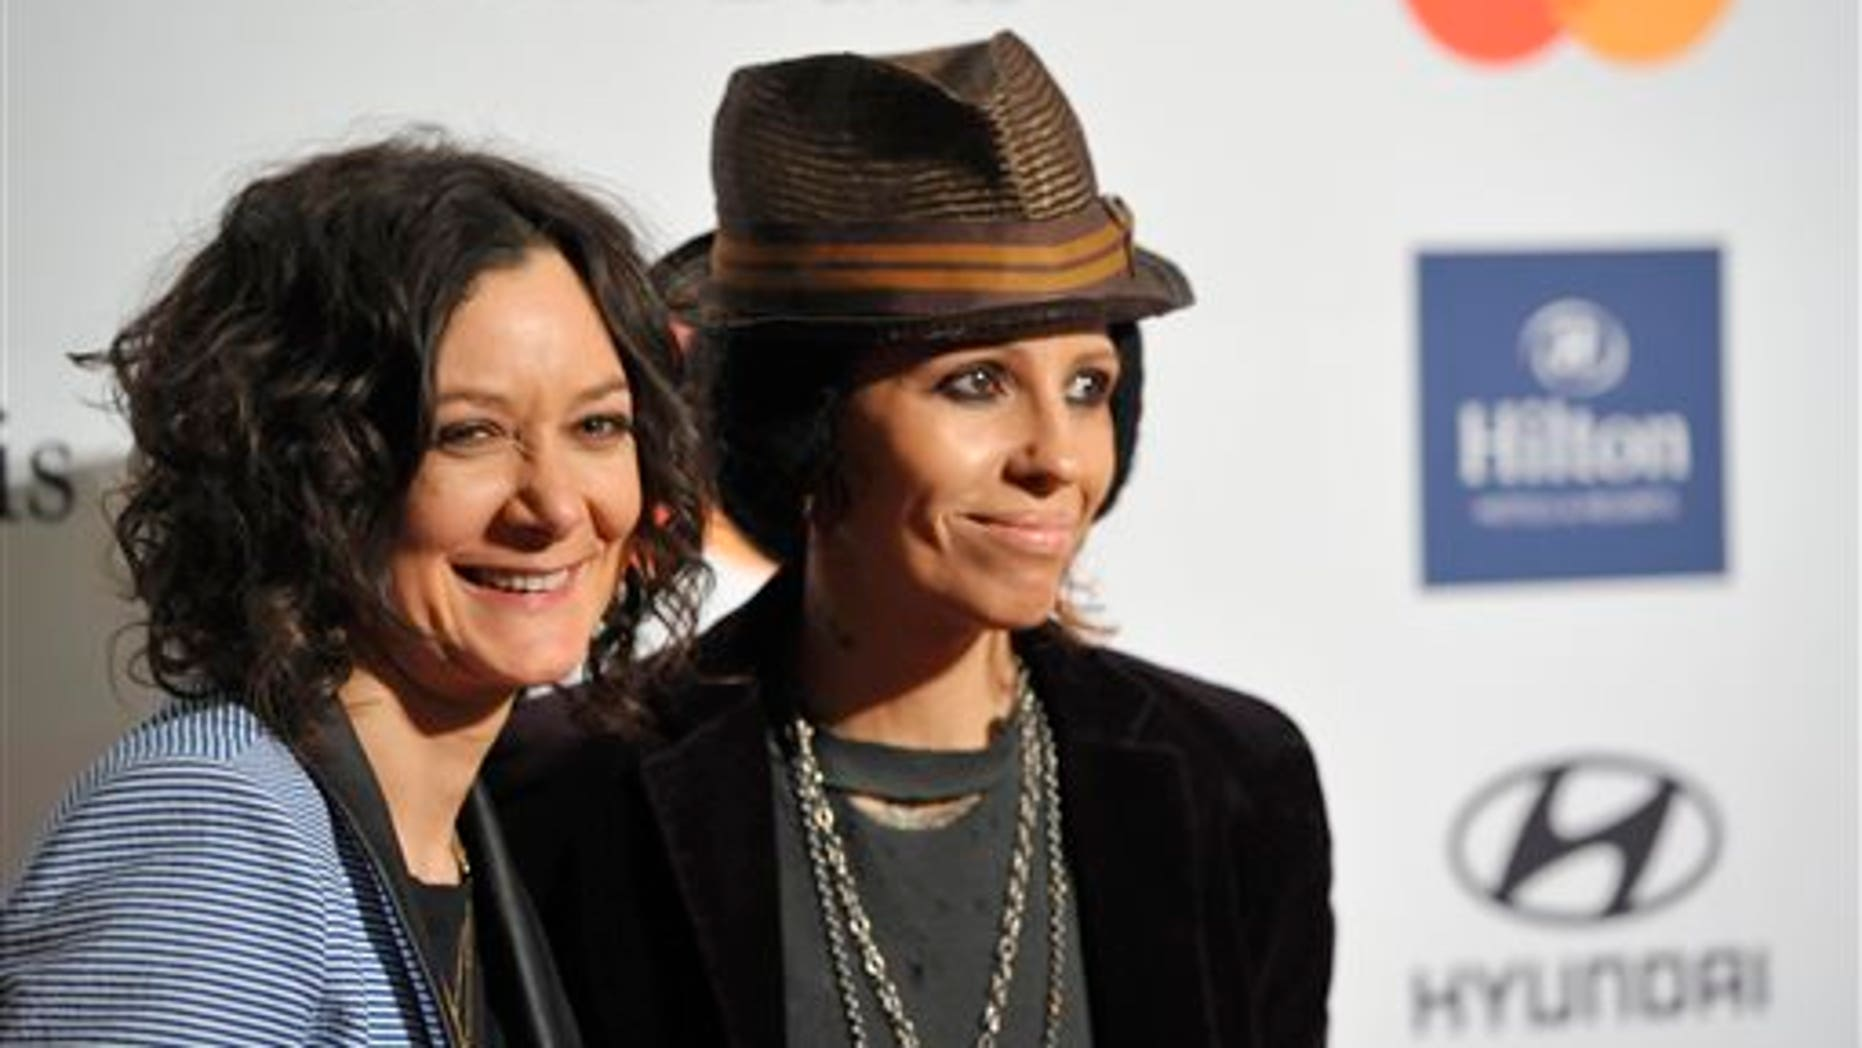 FILE - In this Feb. 9, 2013 file photo, actress Sara Gilbert, left, and recording artist Linda Perry arrive at the Clive Davis Pre-GRAMMY Gala in Beverly Hills, Calif. A spokeswoman for Gilbert says the actress and musician were wed over the weekend. Melissa Kates confirmed the nuptials Monday, March 31, 2014. (Photo by John Shearer/Invision/AP, file)